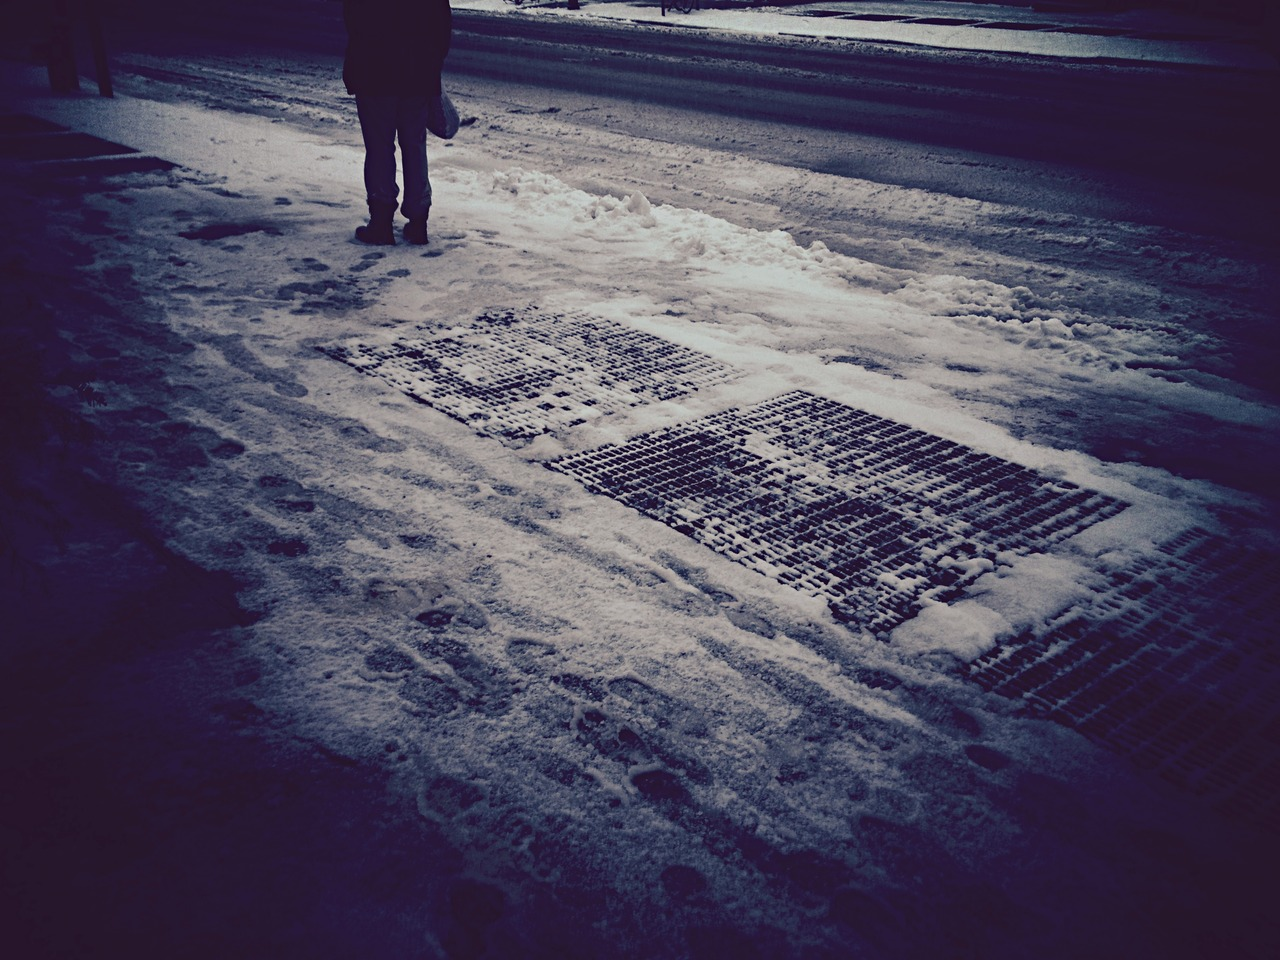 Dead Snow - #peppersearching #pepper #photos #snow #cold #lady